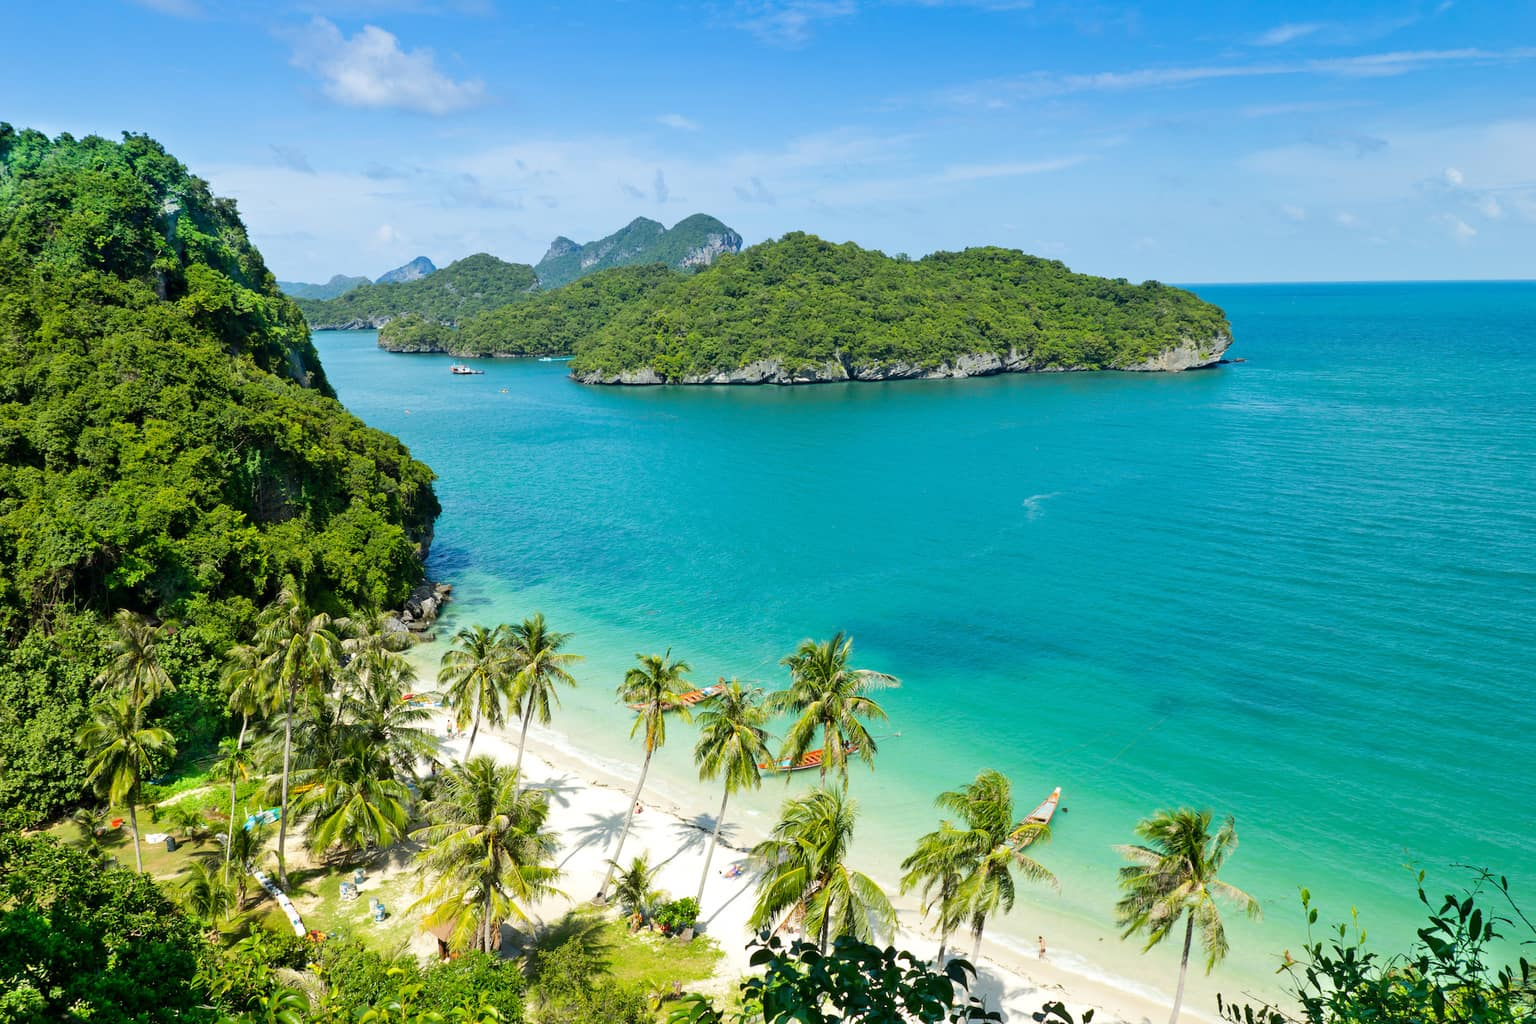 koh samui chat Santiburi samui country club, koh samui is the only championship 18 hole golf course in samui stretching along the hills of the northern coastline offering spectacular elevation changes from 25 to 180 meters above sea level.